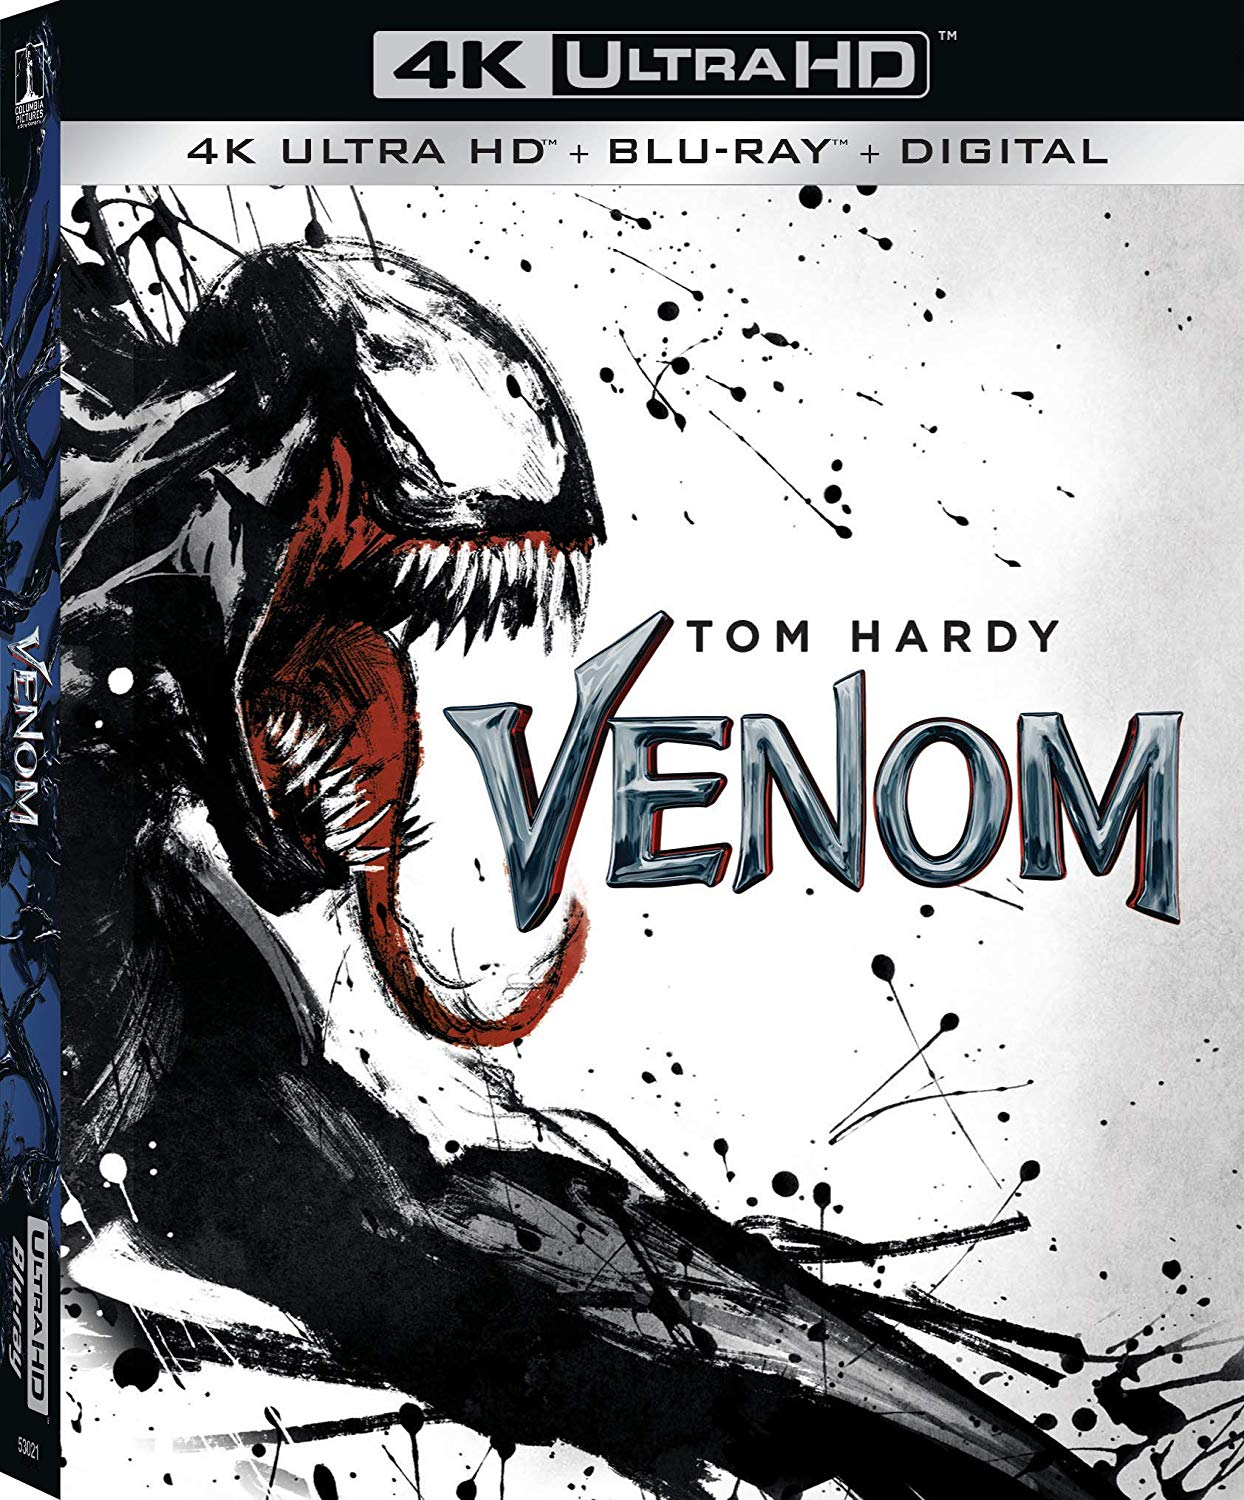 Venom' DVD, Blu-Ray and Digital Release Dates • Nerds and Beyond